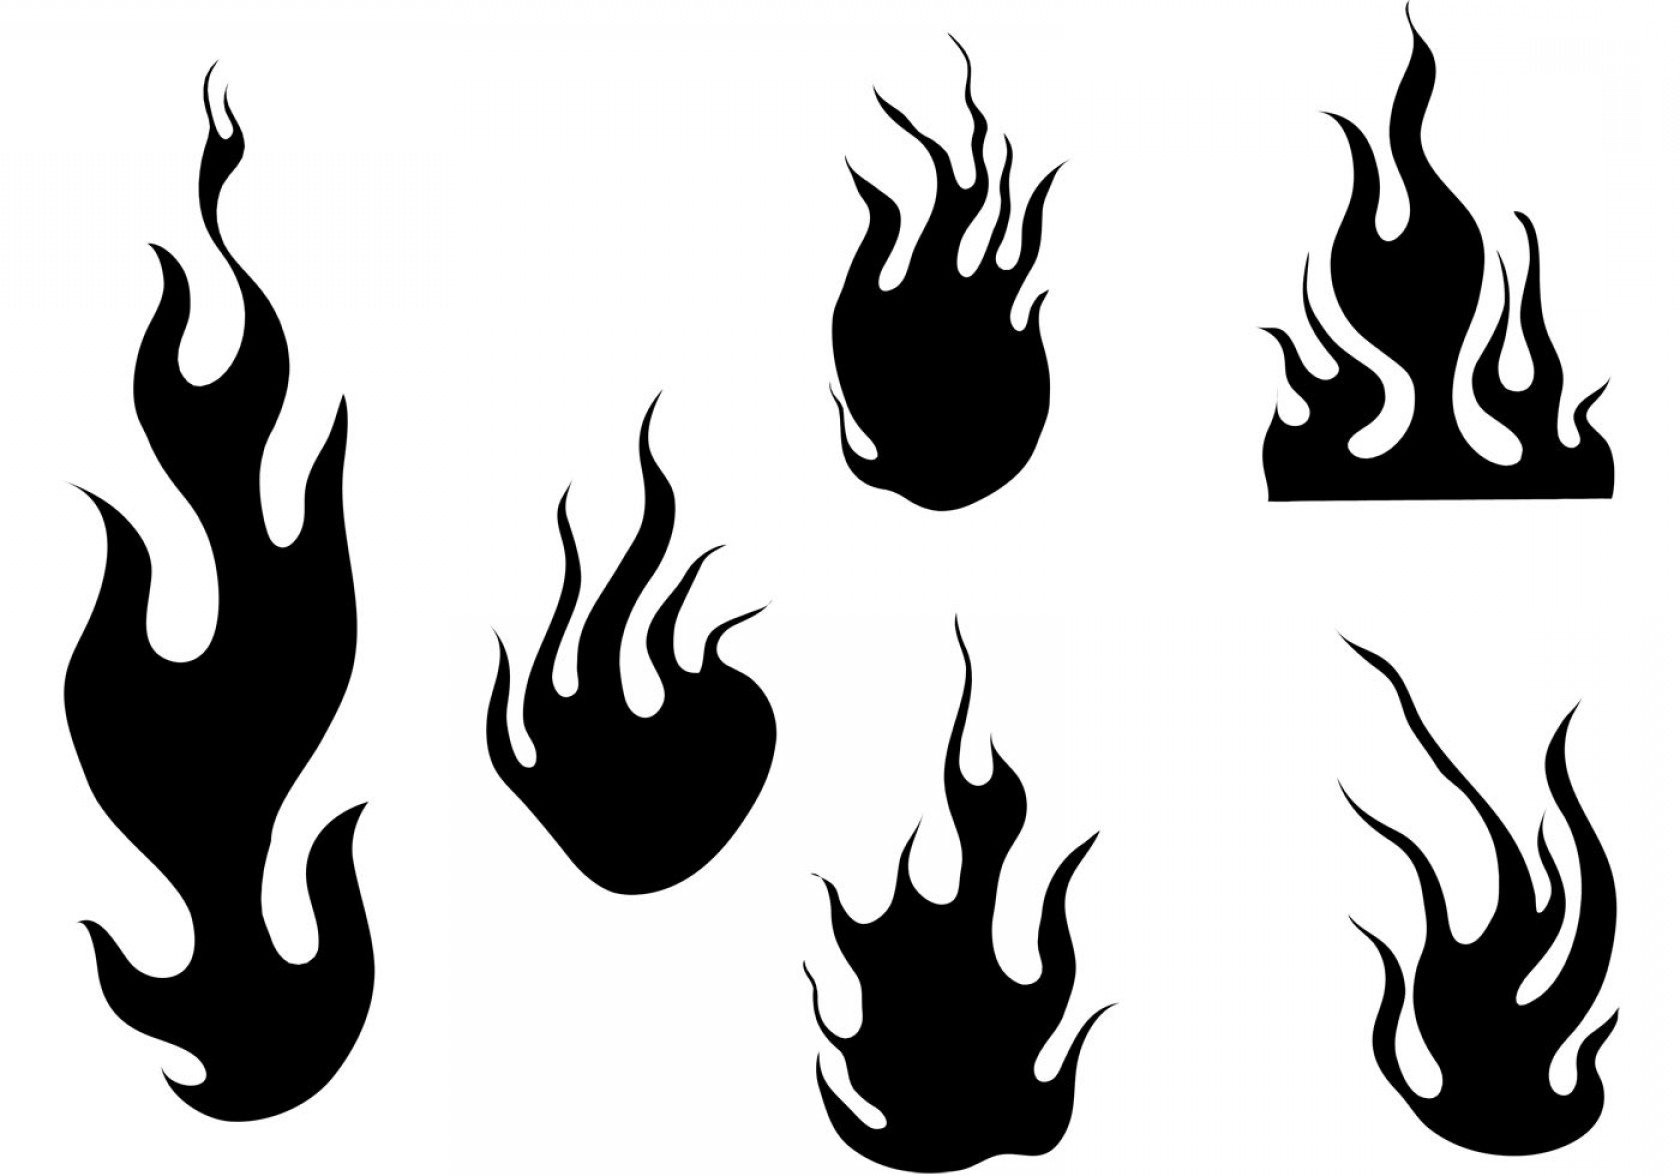 Flame Silhouette Vector At Vectorified